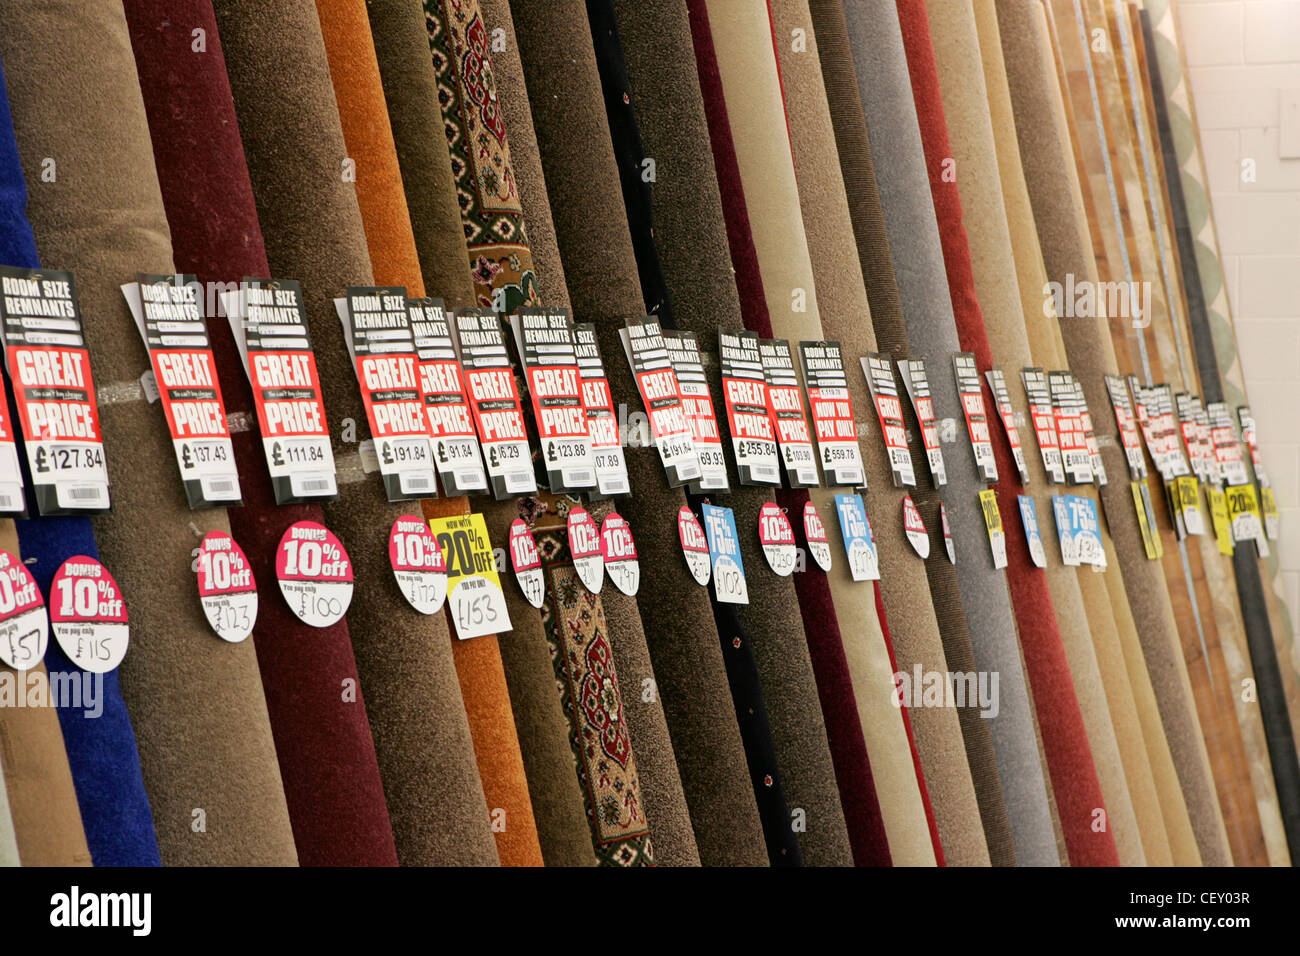 carpets for sale in shop, uk - Stock Image